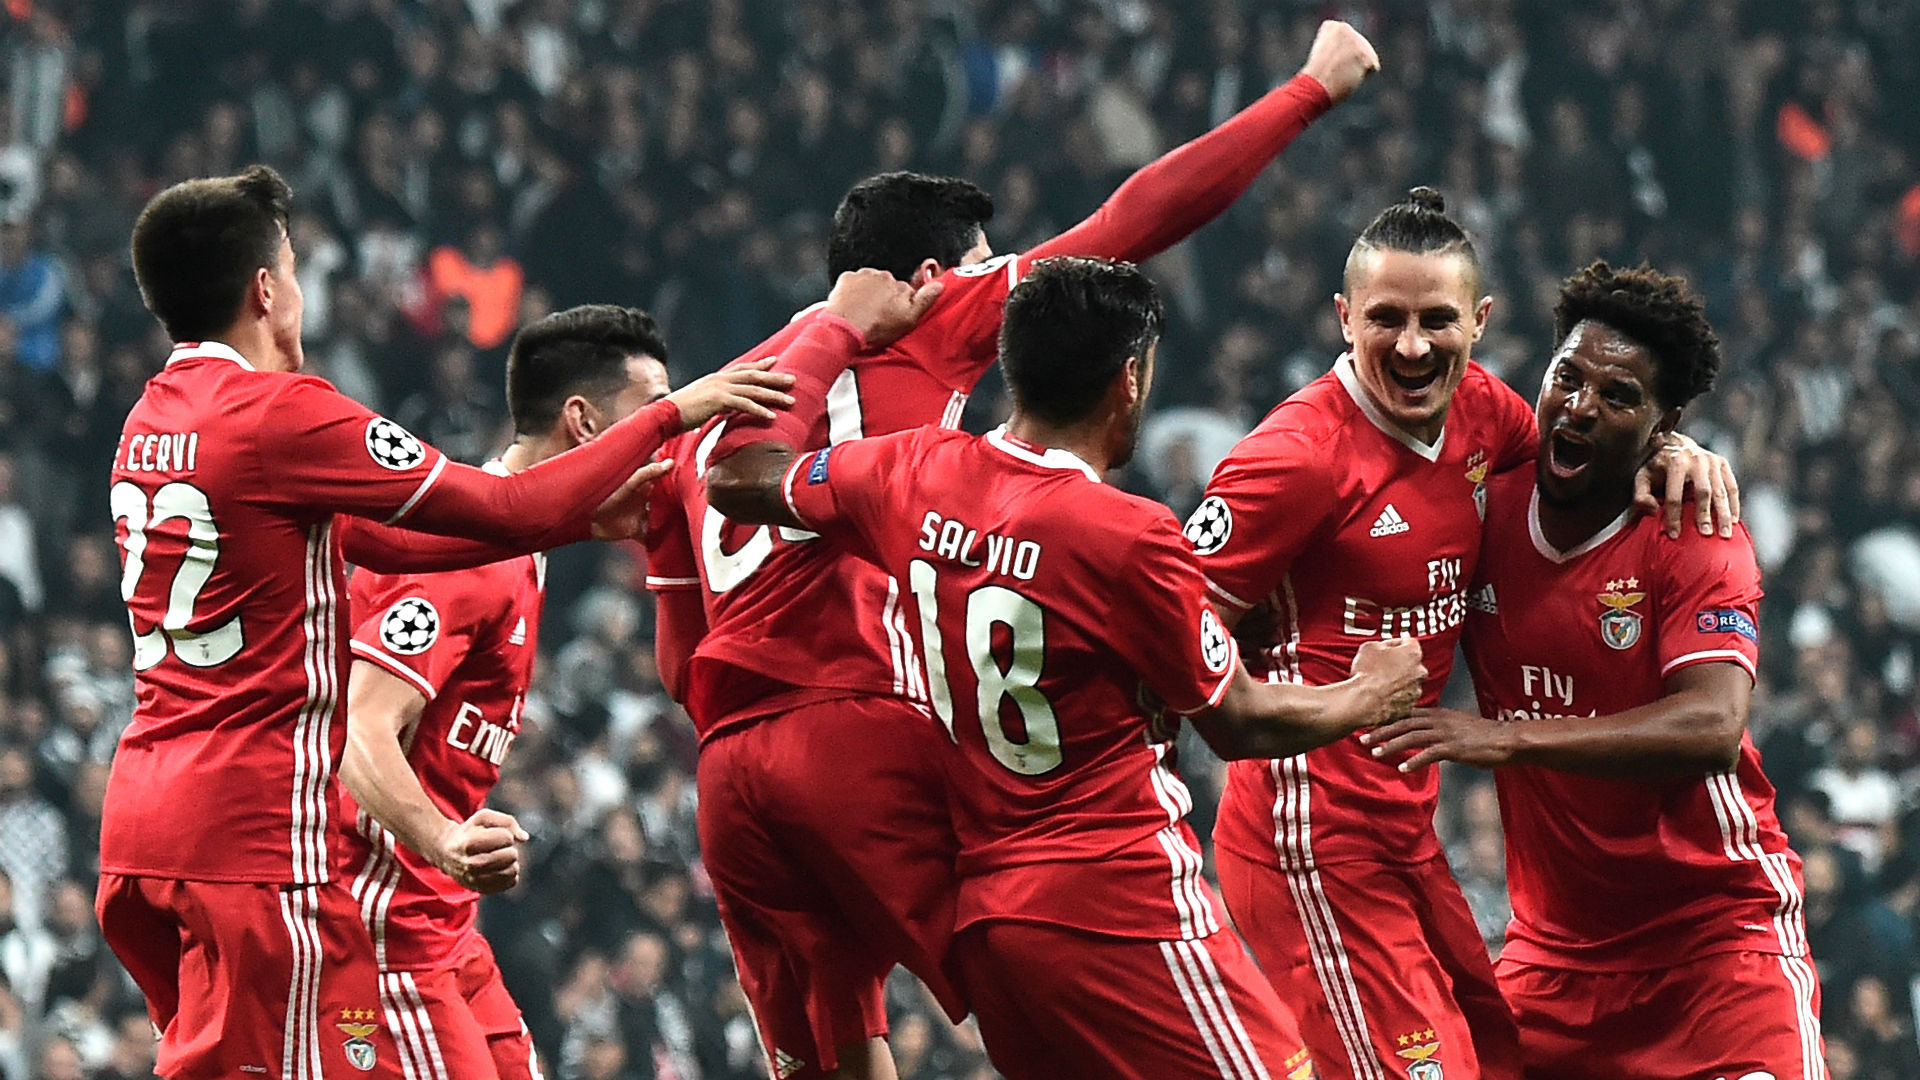 Benfica Champions League